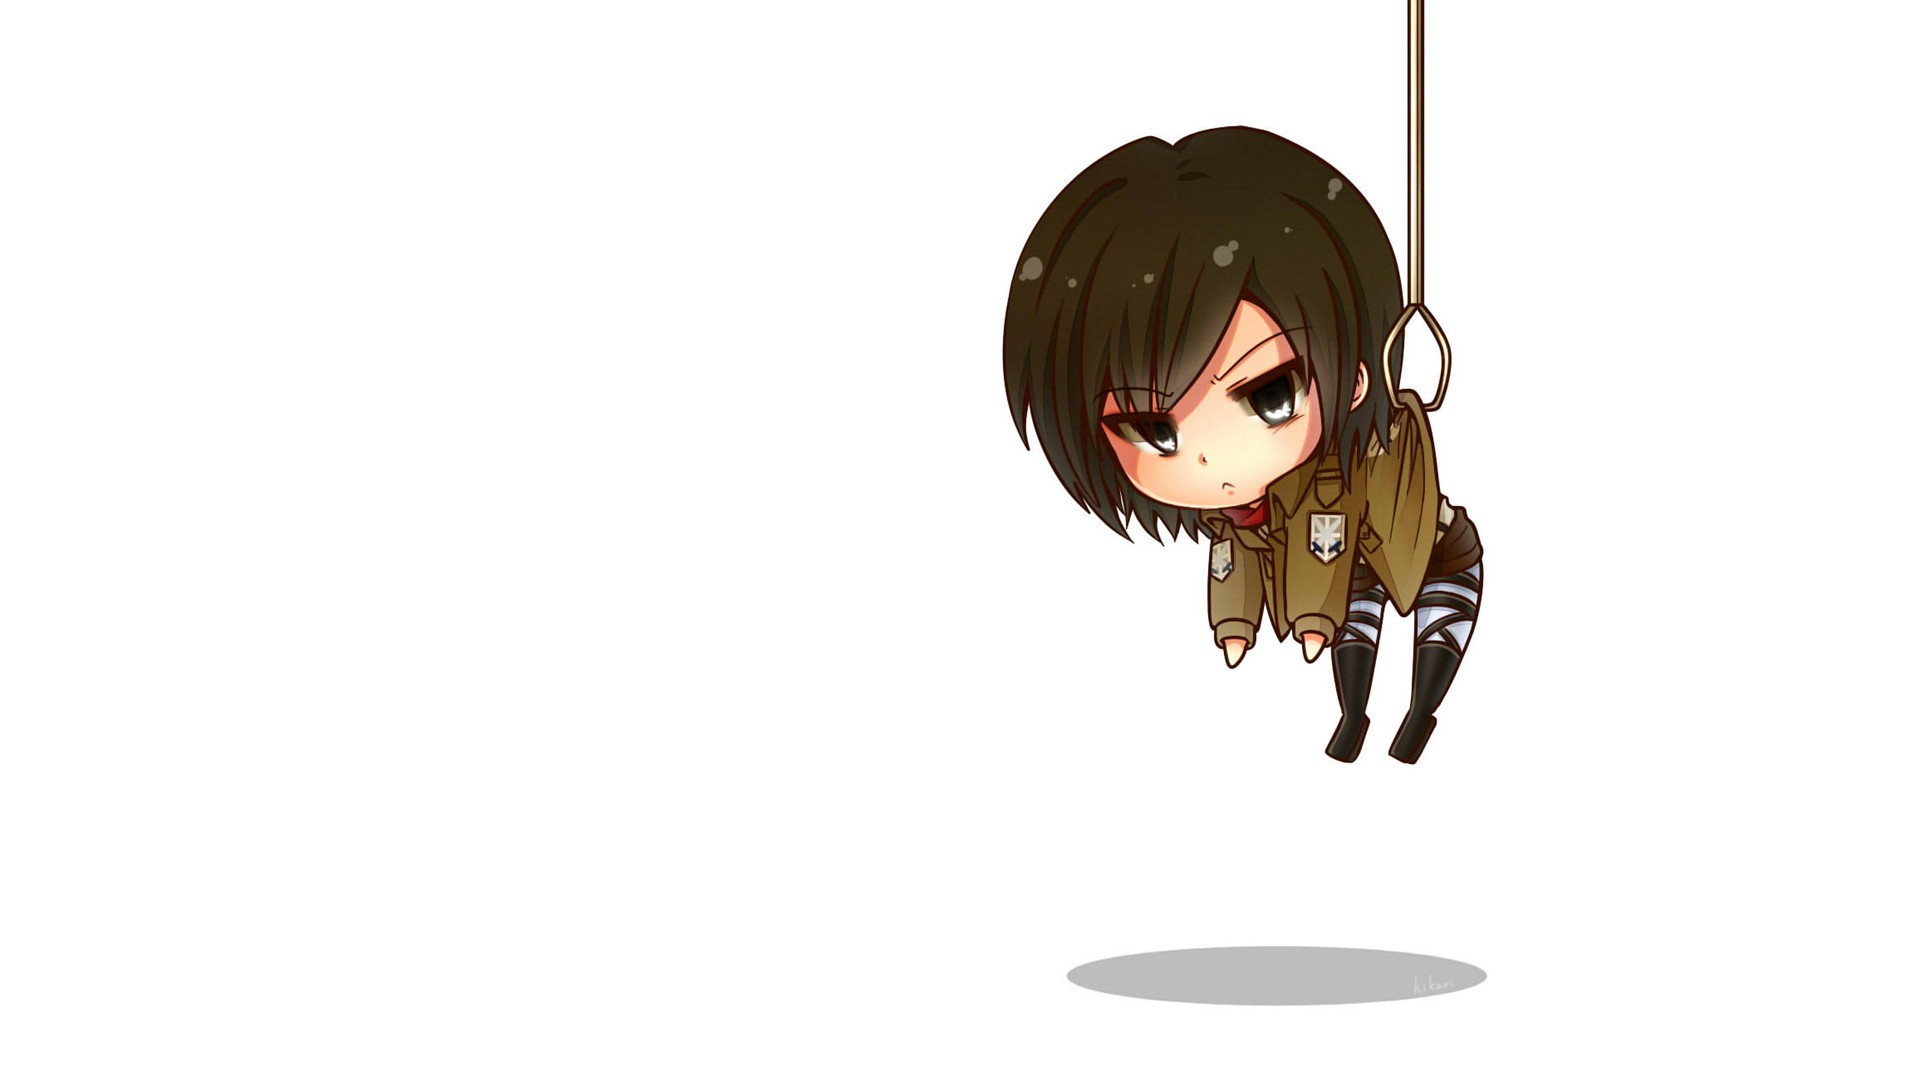 Attack on Titan Chibi Wallpaper HD 30 Background Pictures 1920x1080